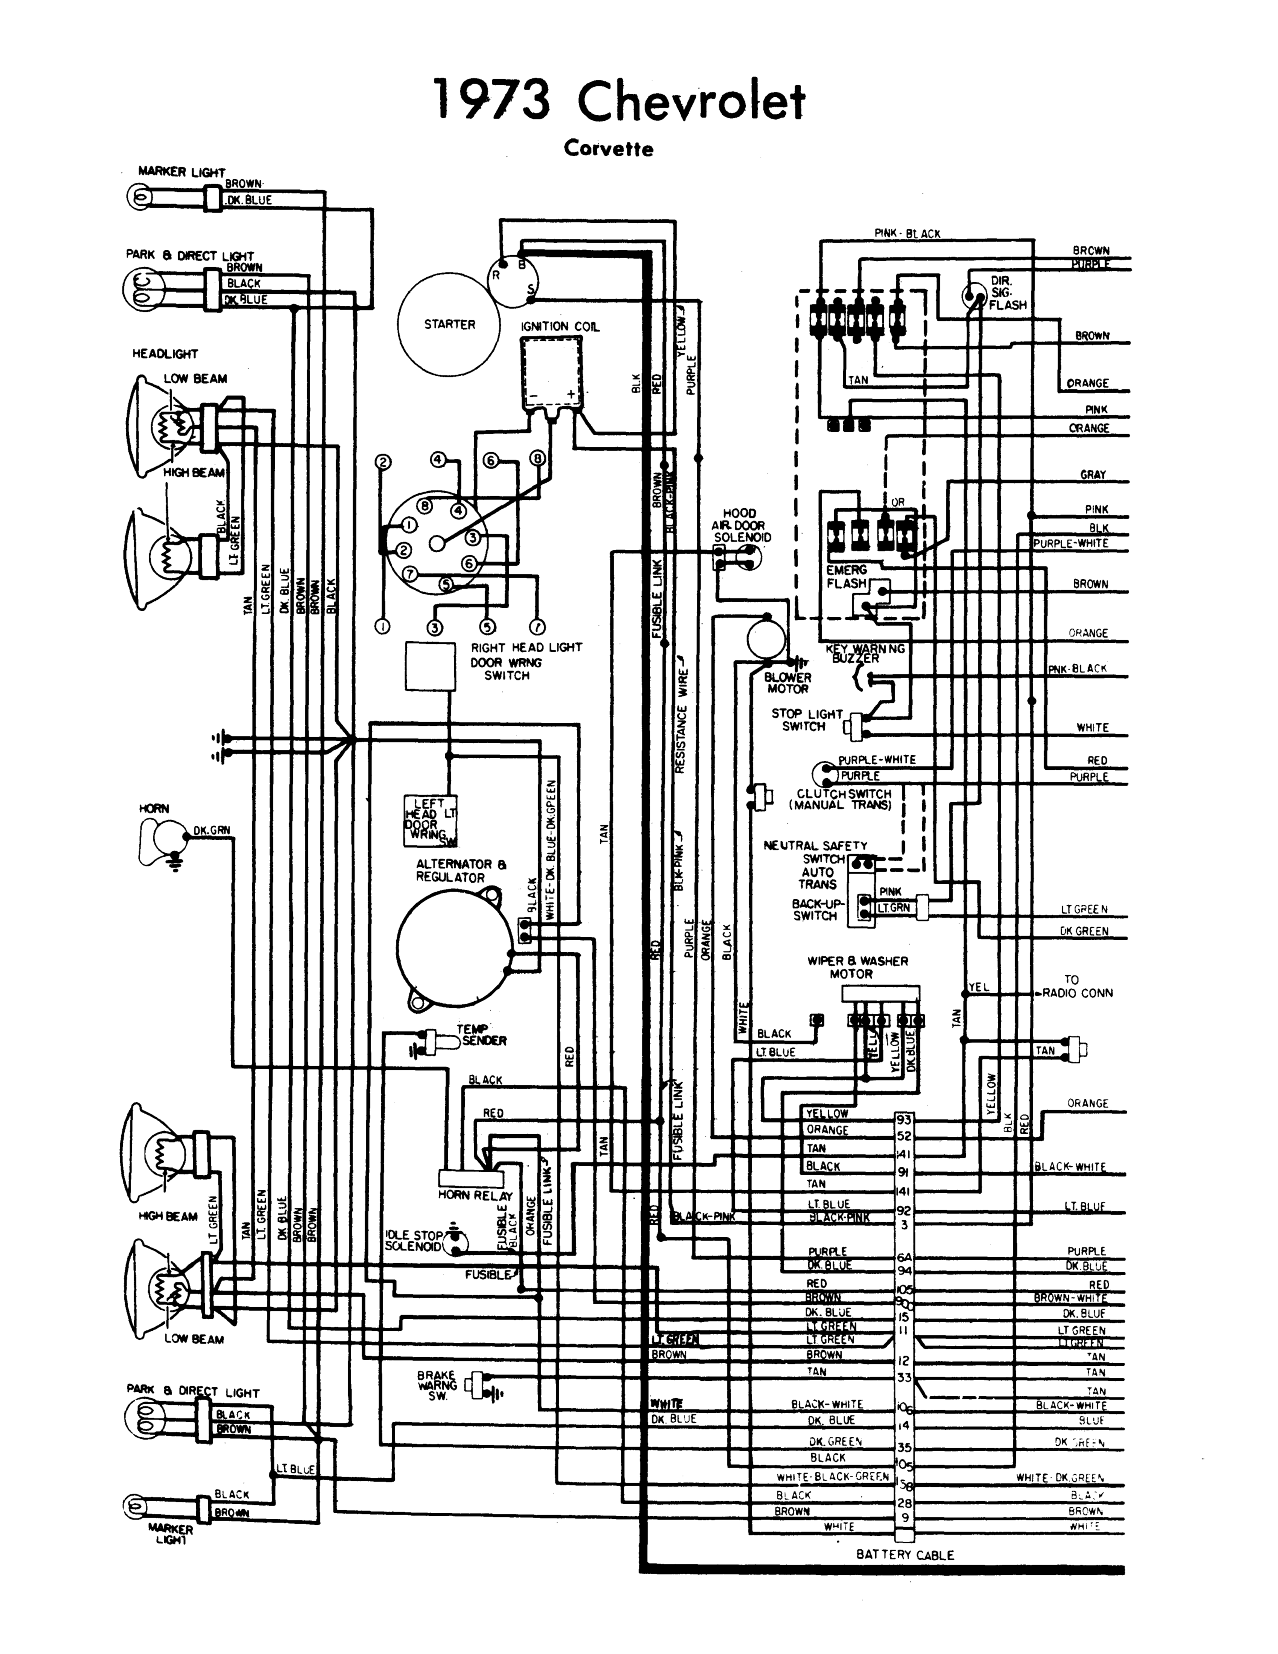 wiring diagram 1973 corvette | Chevy Corvette 1973 Wiring Diagrams on 88 corvette vacuum diagram, 1973 corvette power window circuit, 1973 corvette engine, 1973 corvette cover, 1973 corvette starter wiring, 1973 corvette service manual, 1973 corvette carburetor, 1987 corvette air conditioner diagram, 1969 corvette vacuum hose diagram, 79 corvette ac system diagram, 1973 corvette speedometer, 1973 corvette coil, 1973 corvette dash, 1973 corvette air cleaner, 1973 corvette frame, 1974 corvette fuse box diagram, 1973 corvette oil filter, 1973 corvette alternator wiring, 1973 corvette exhaust, 1973 corvette brakes,